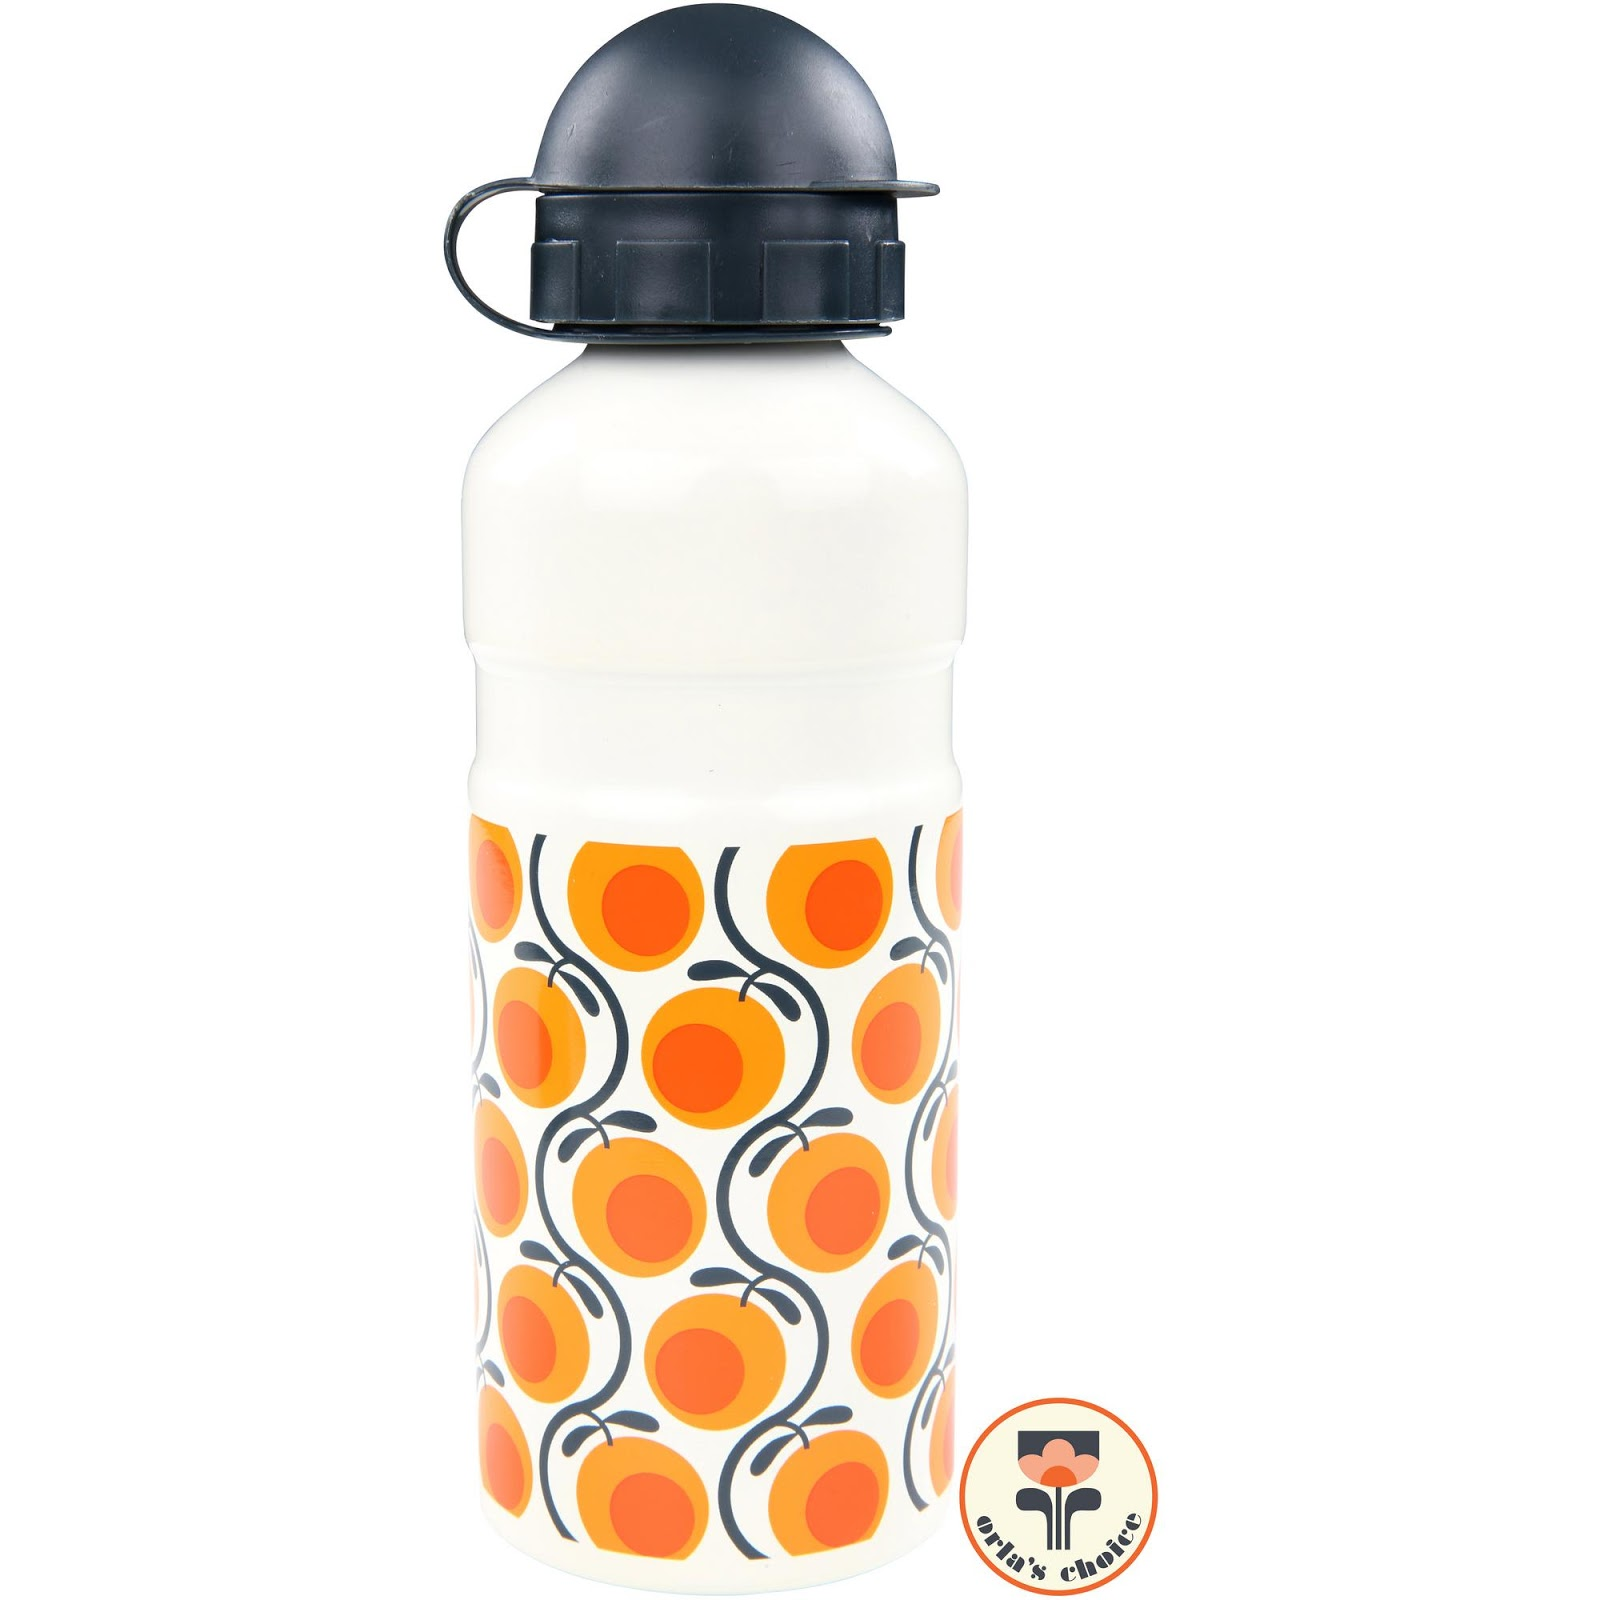 I Love Orla Kiely Olive And Orange Cycling Accessories At Halfords